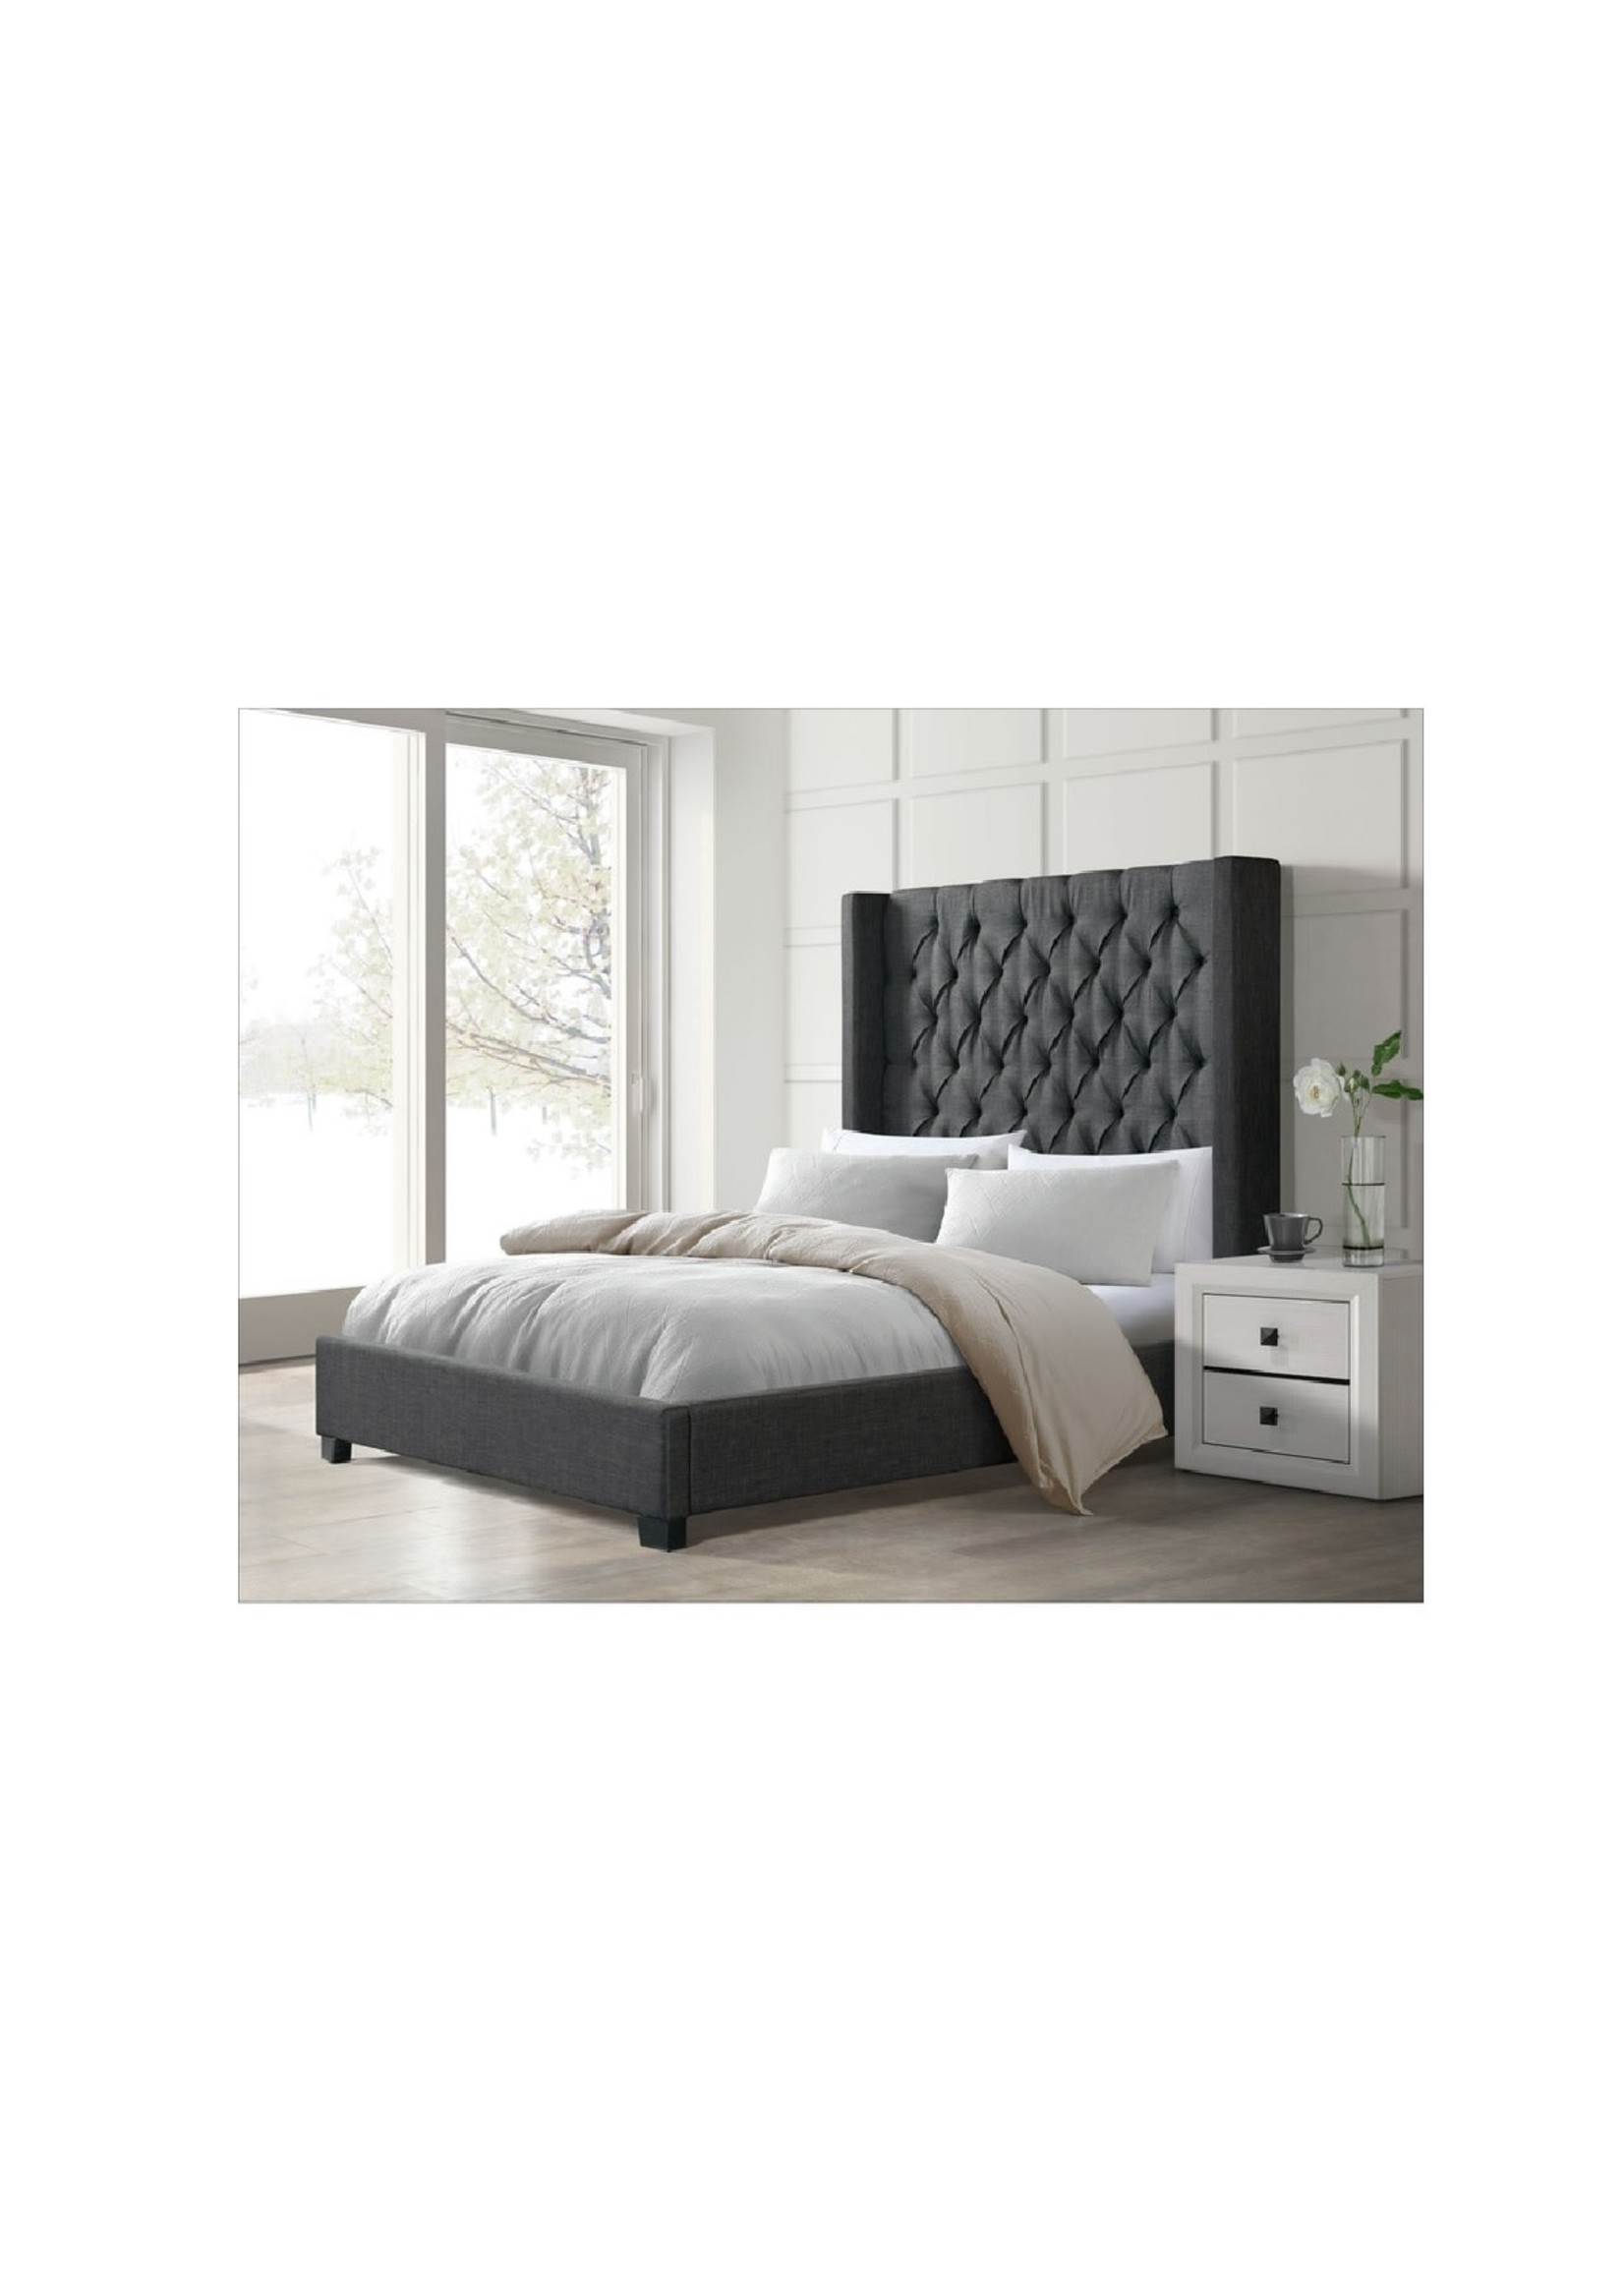 ELEMENTS KING BED MORROW HEIRLOOM CHARCOAL